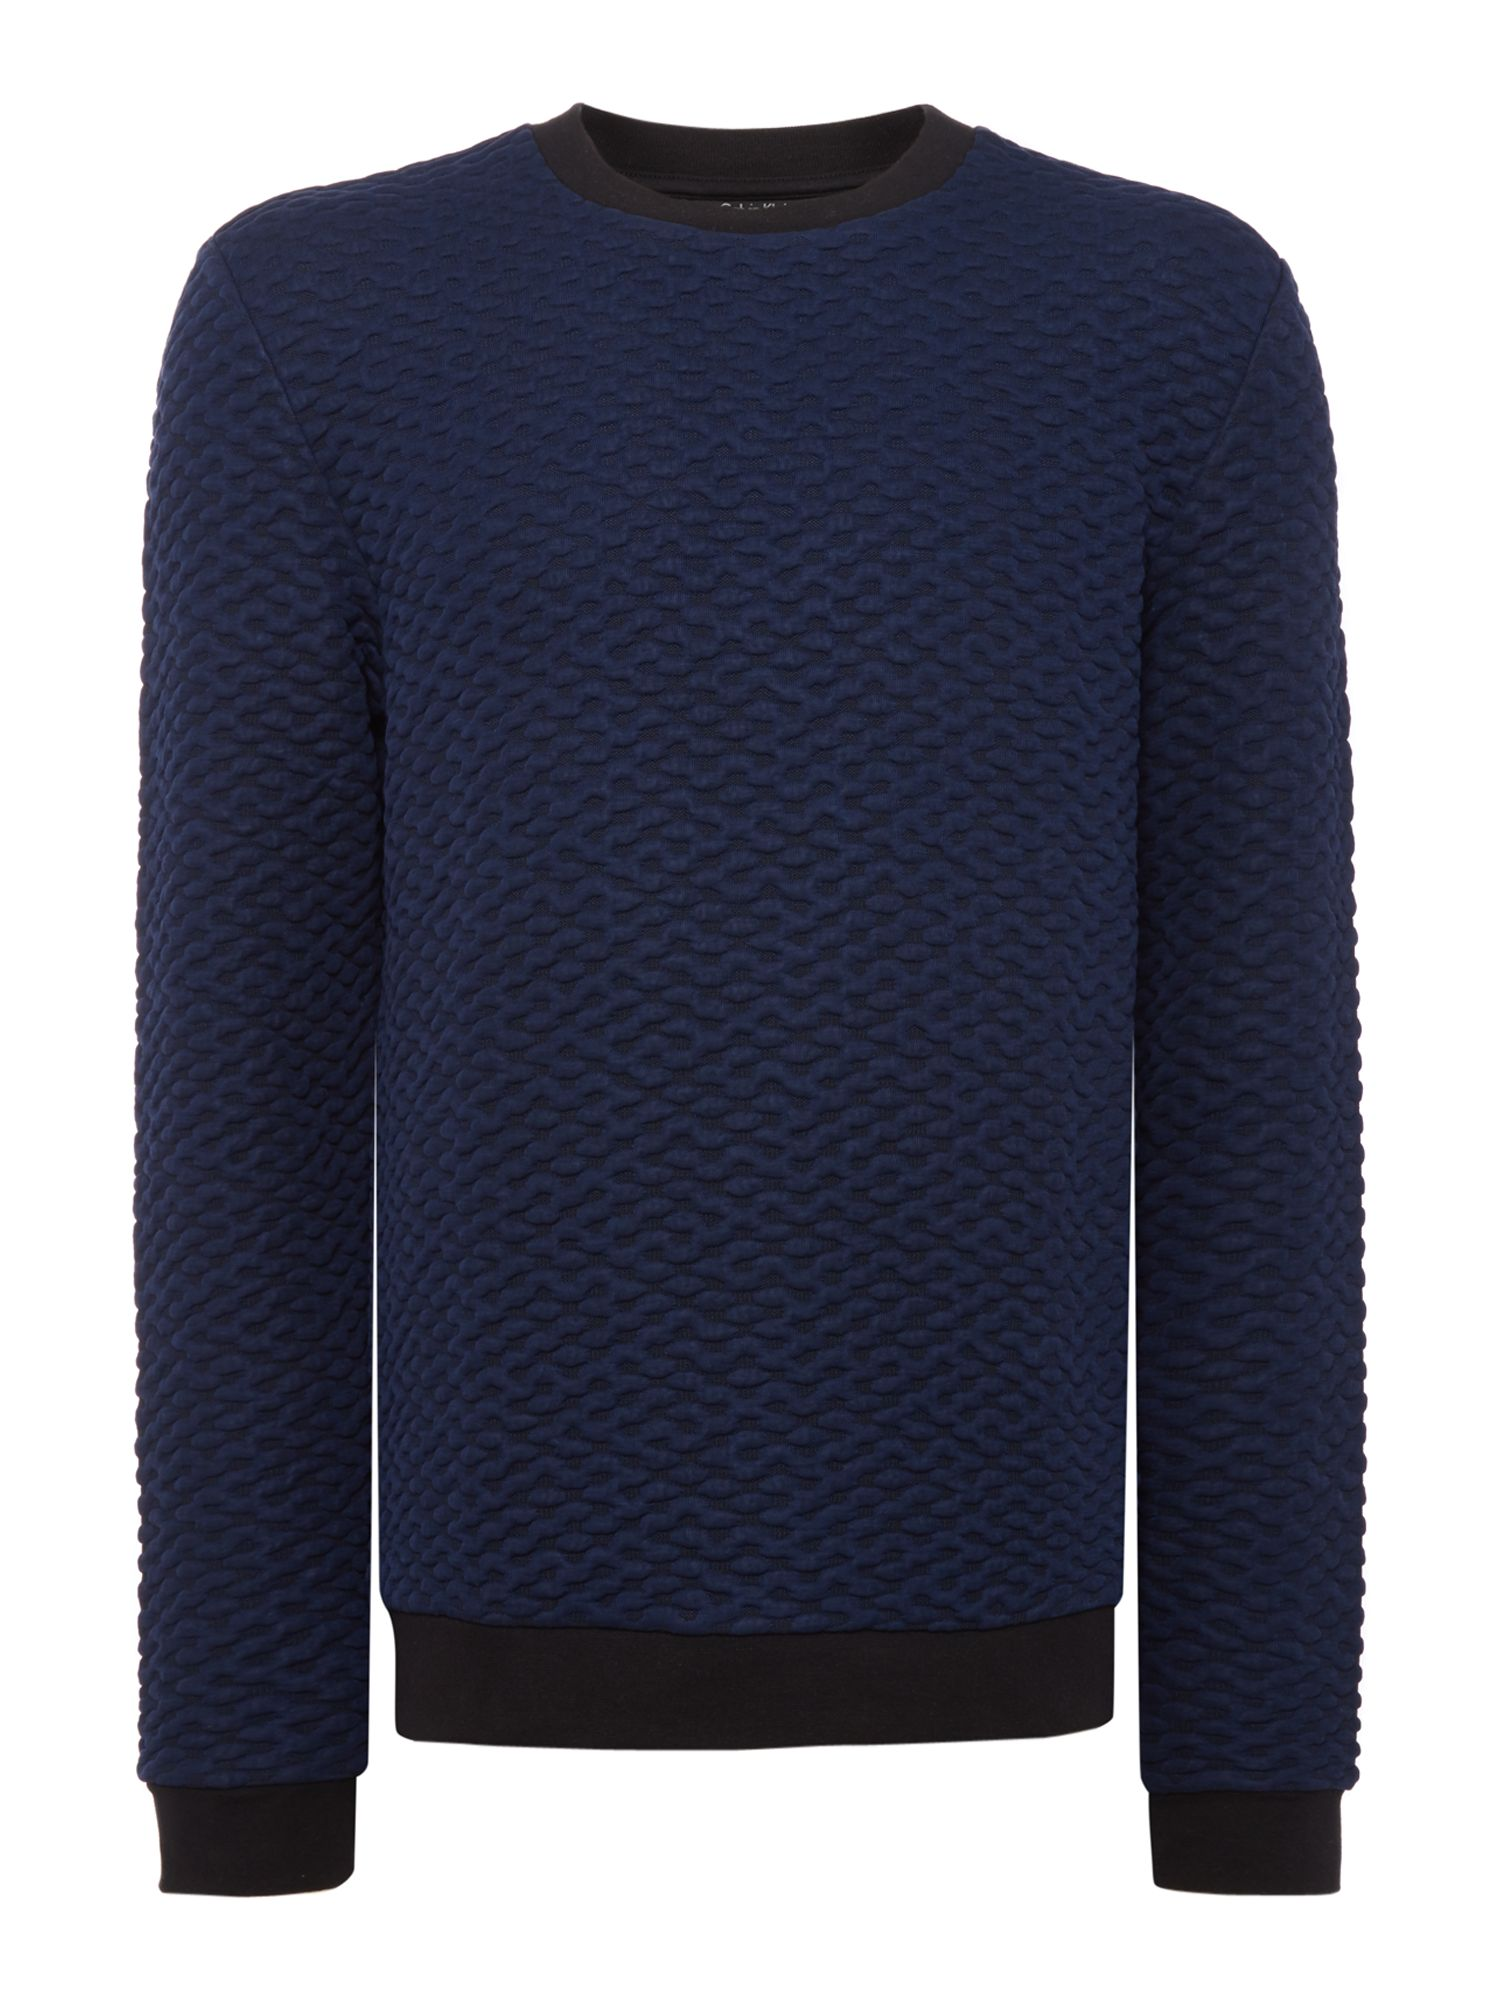 Men's Calvin Klein Kannor Blister Jacquard Sweater, Mid Blue